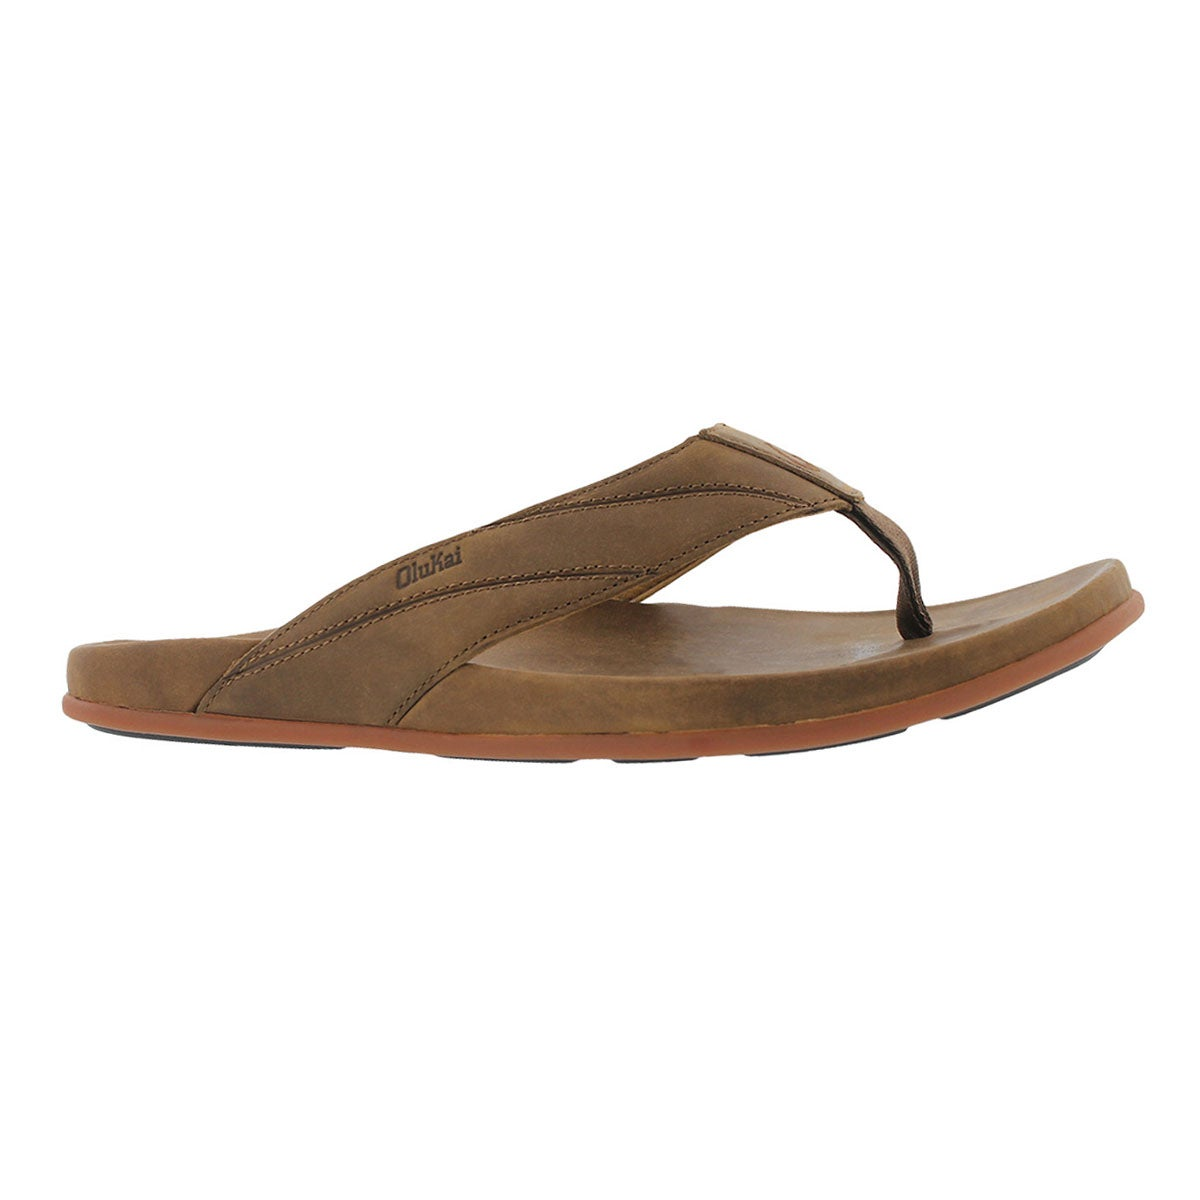 Men's PIKOI ray thong sandals